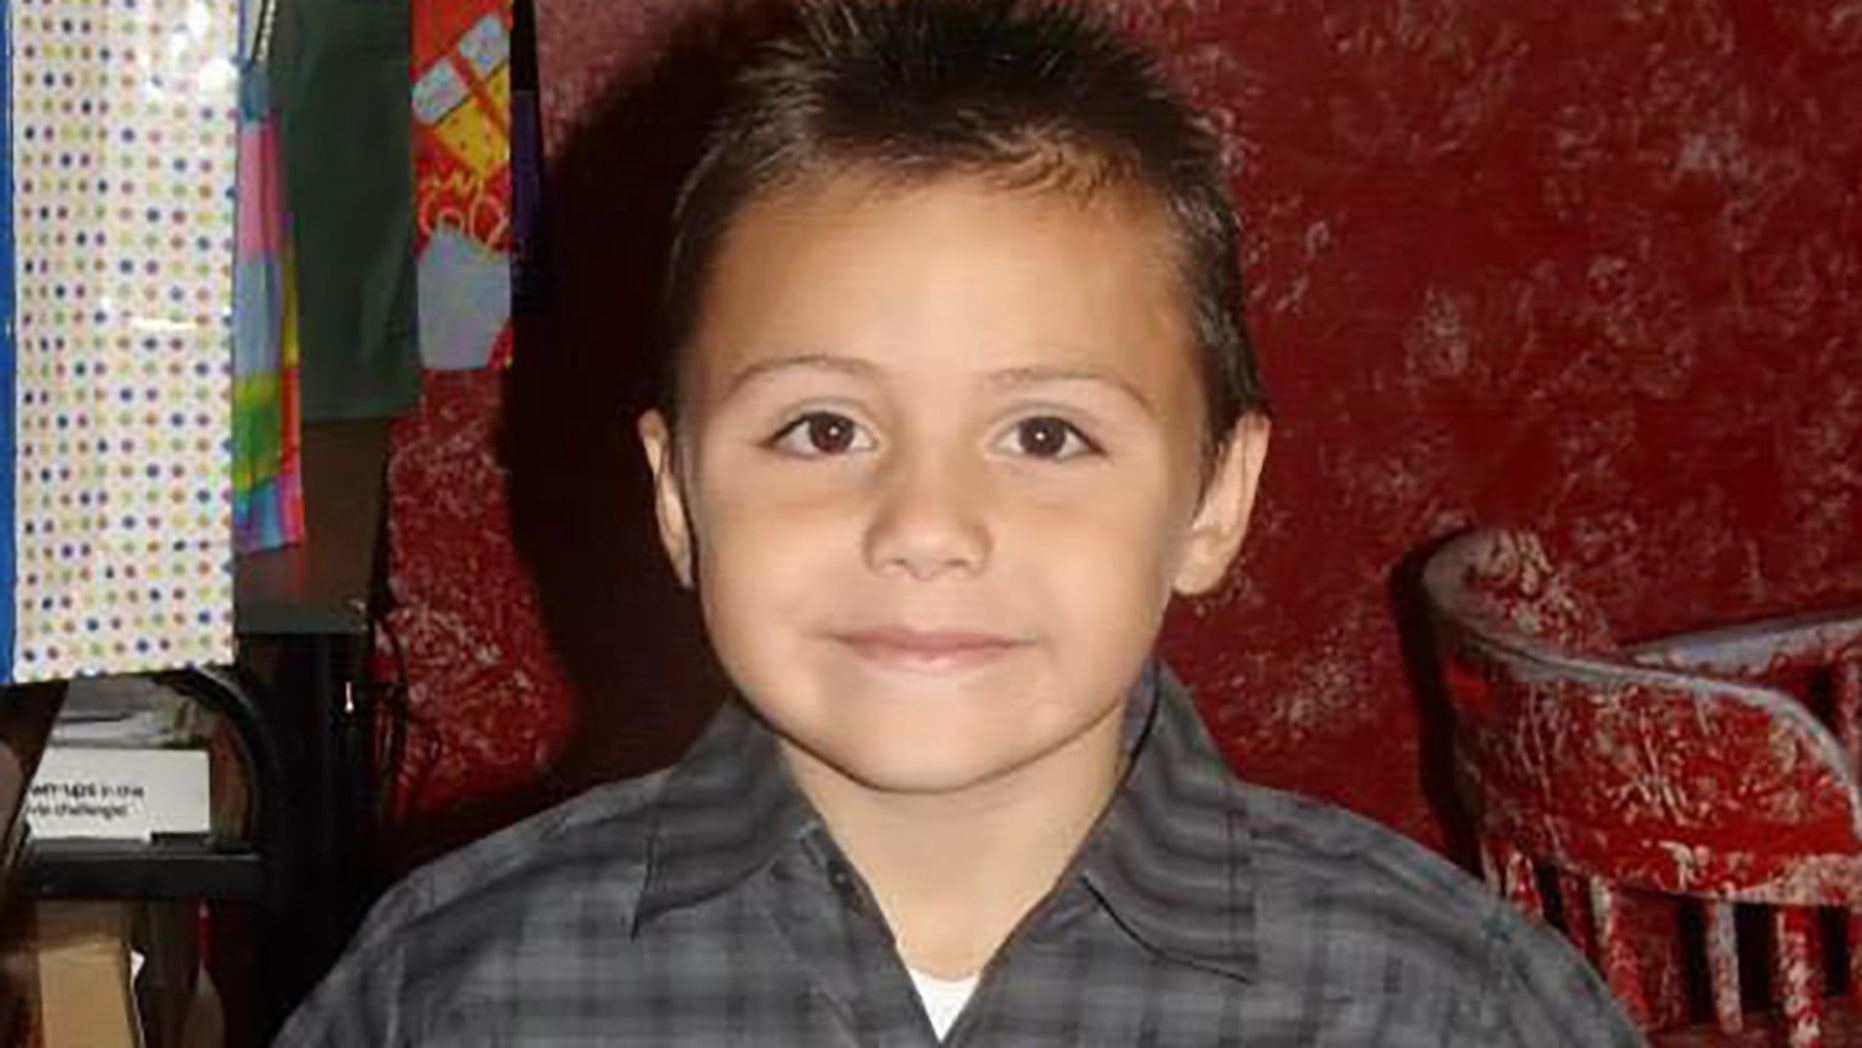 """Authorities on Thursday said they were investigating the """"suspicious"""" death of Anthony Avalos, 10, who reportedly died from injuries relating to a fall."""